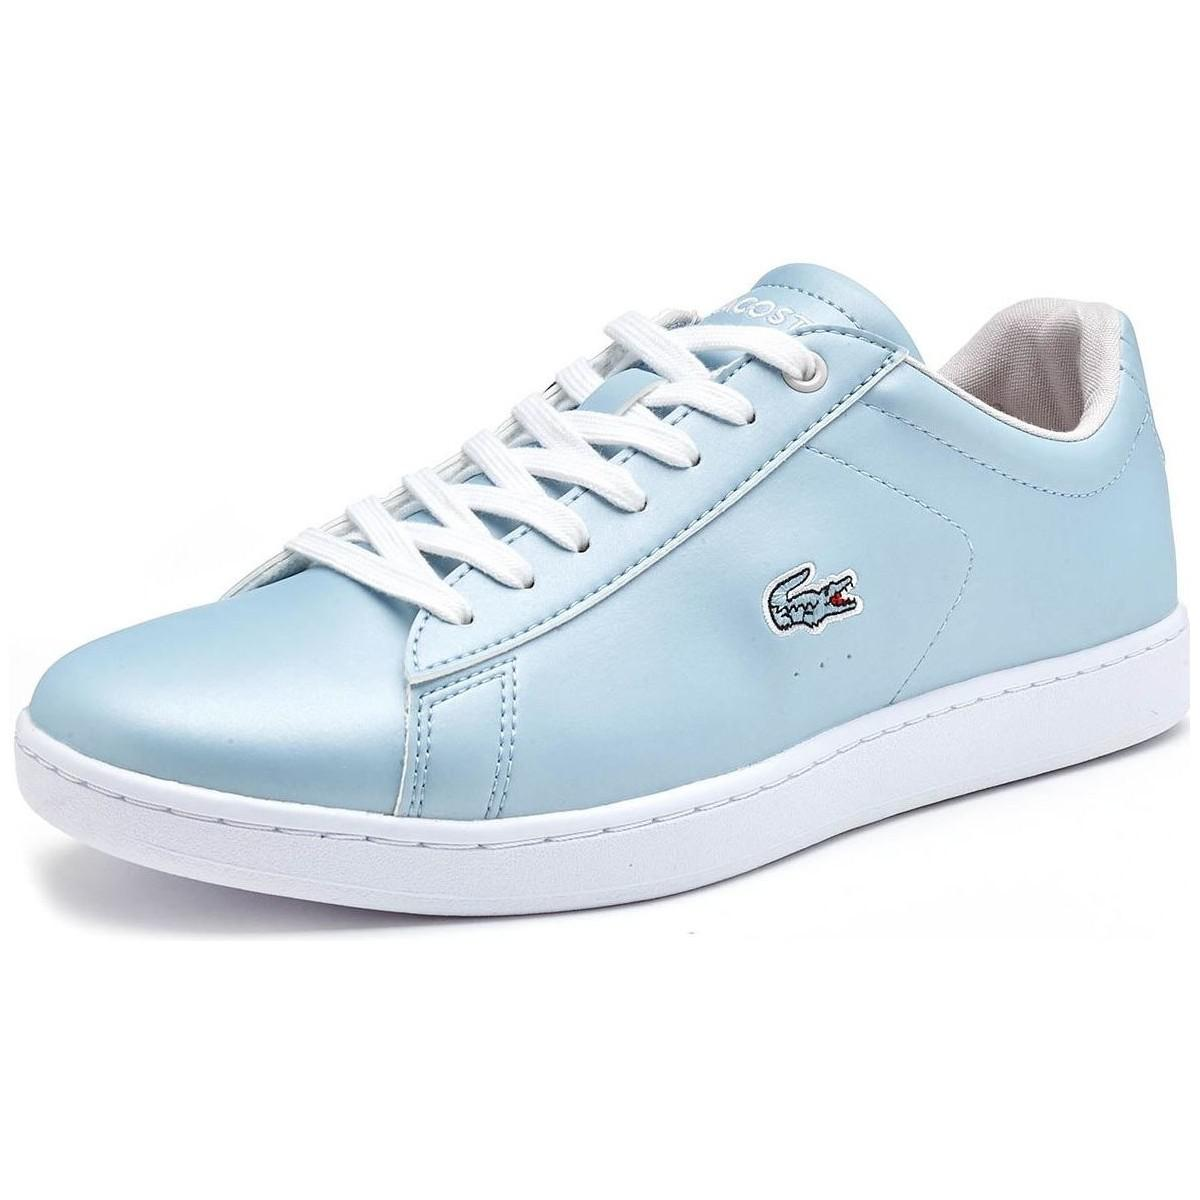 Lacoste. Carnaby Evo 317 4 Spw Trainers In Light Blue 734spw0010 1f2 Men\u0027s  ...